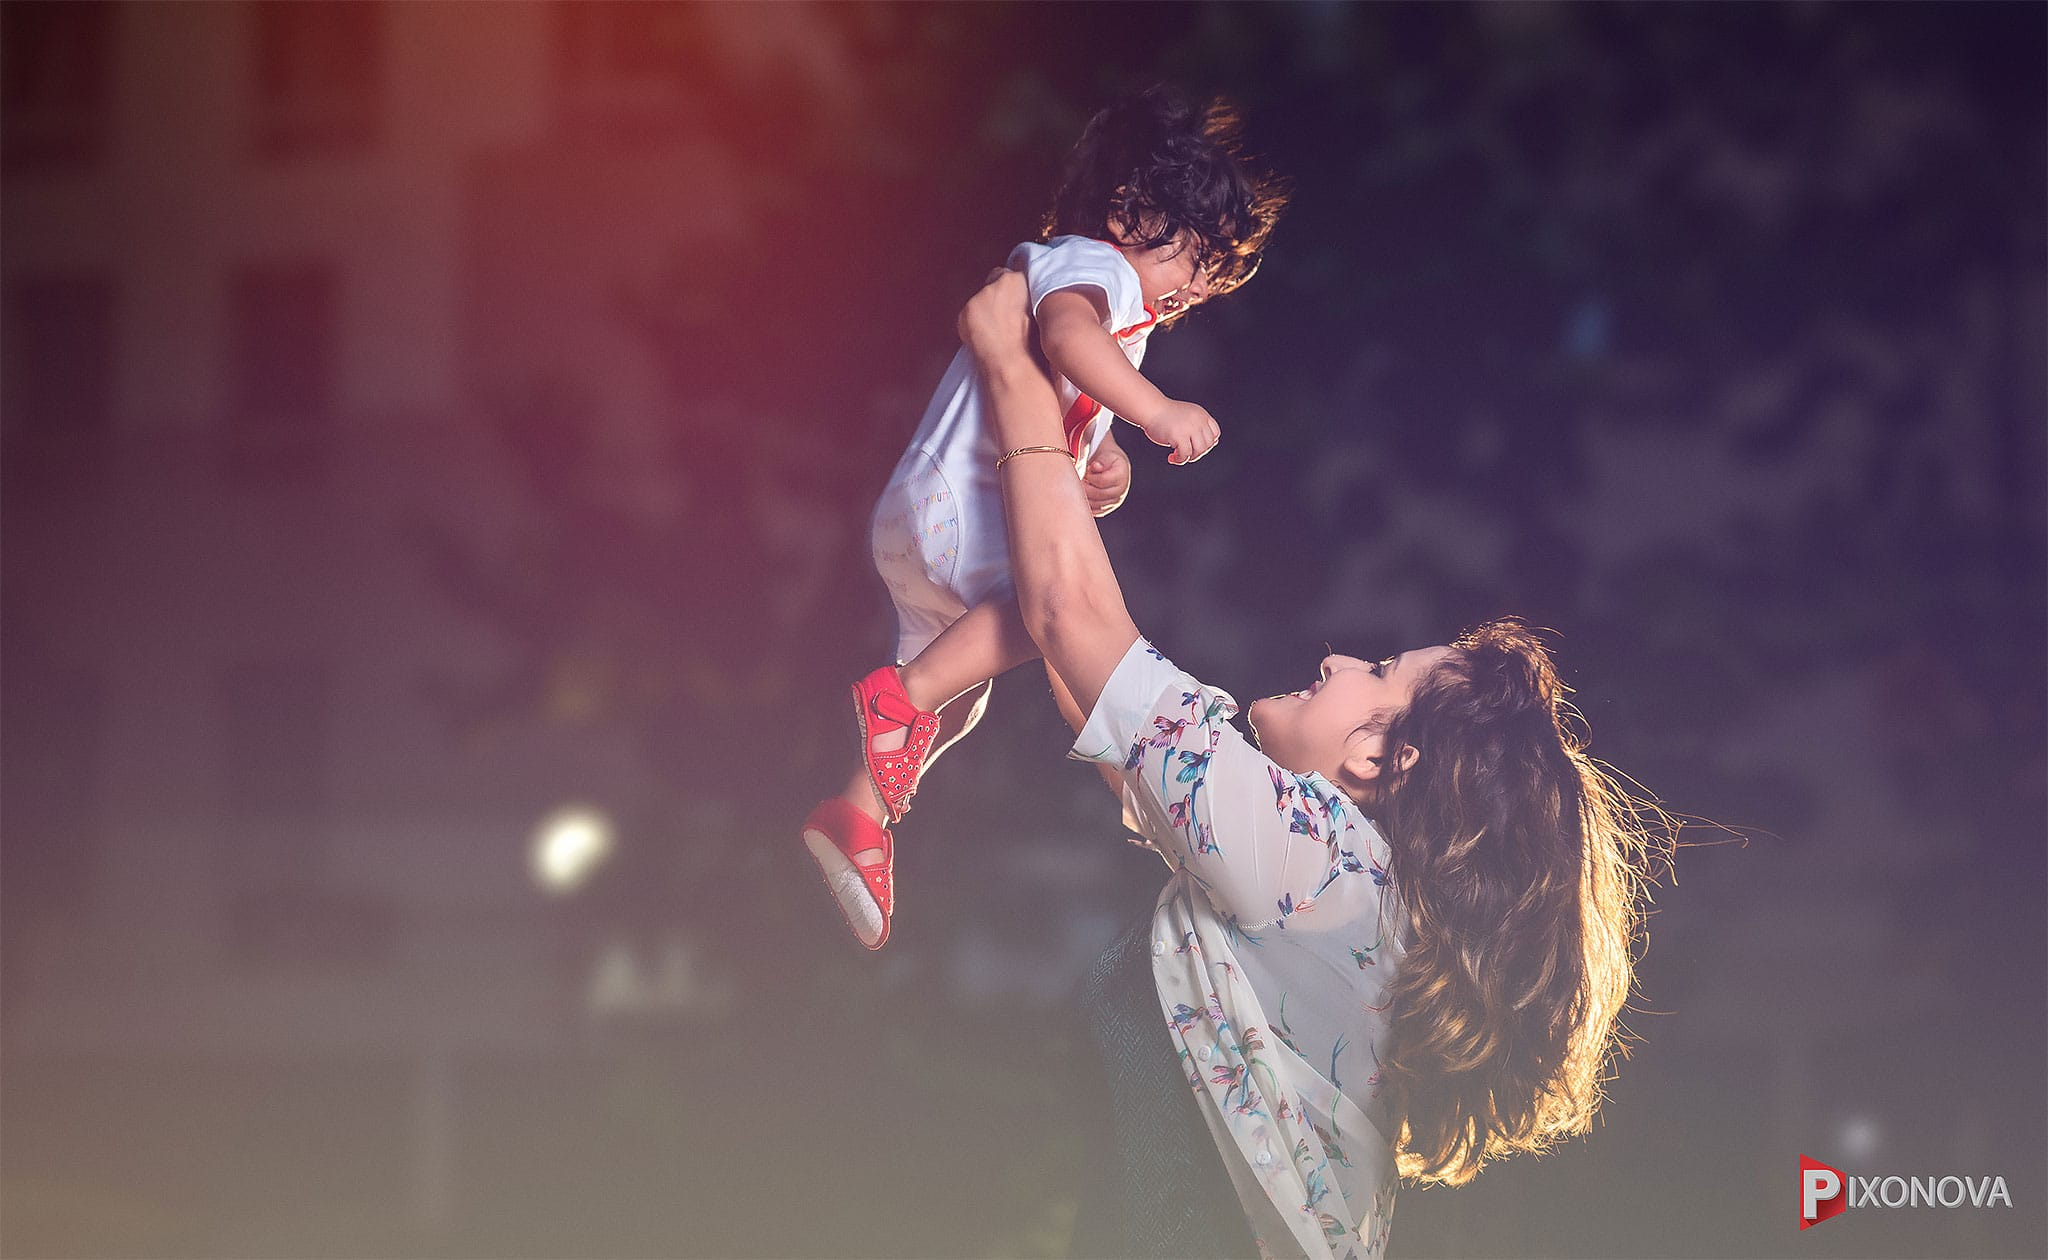 Mother play with her baby boy during a baby shoot